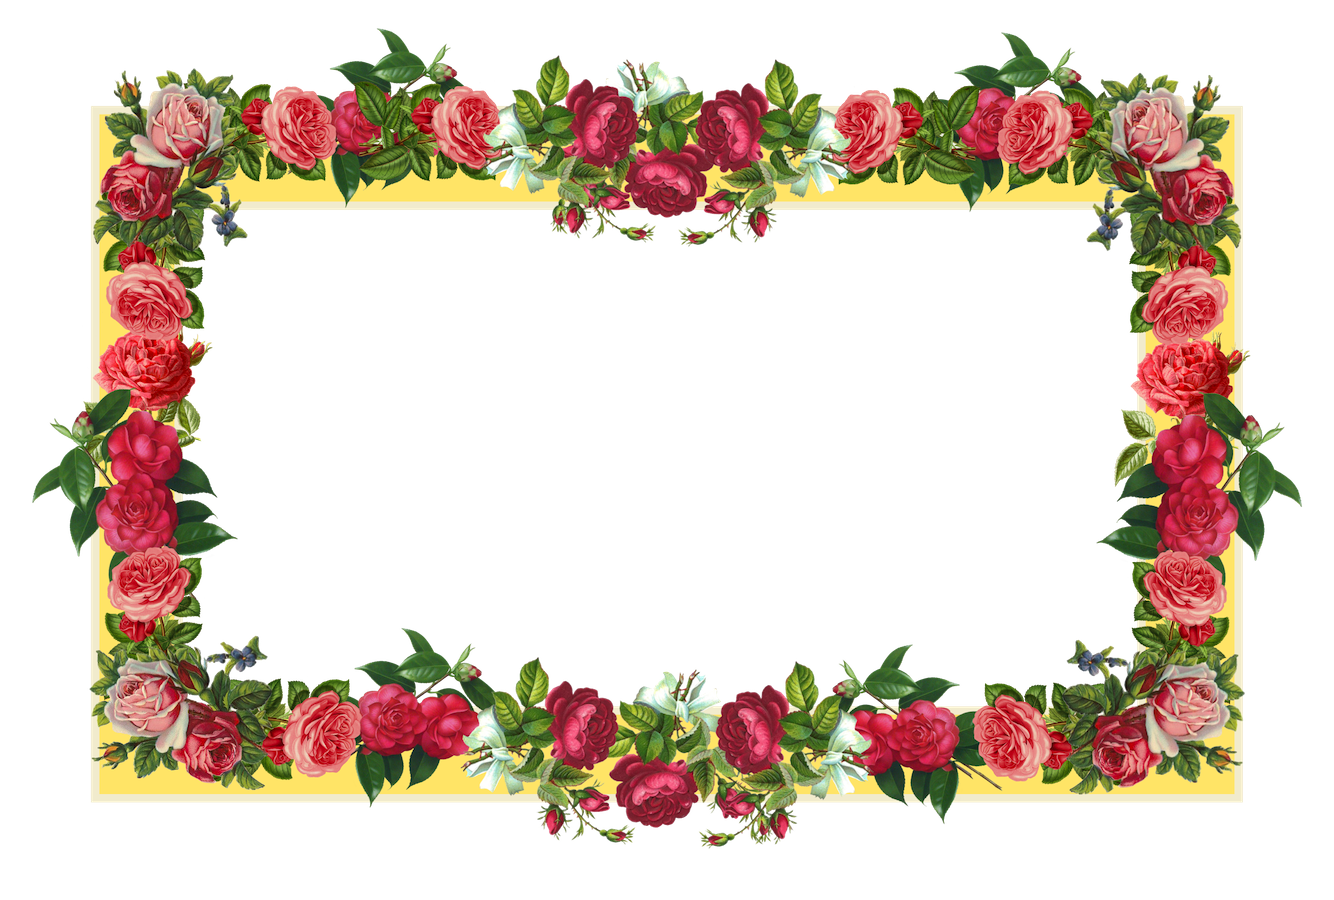 Flowers Borders Png Images PNG Image - Celtic Border PNG HD